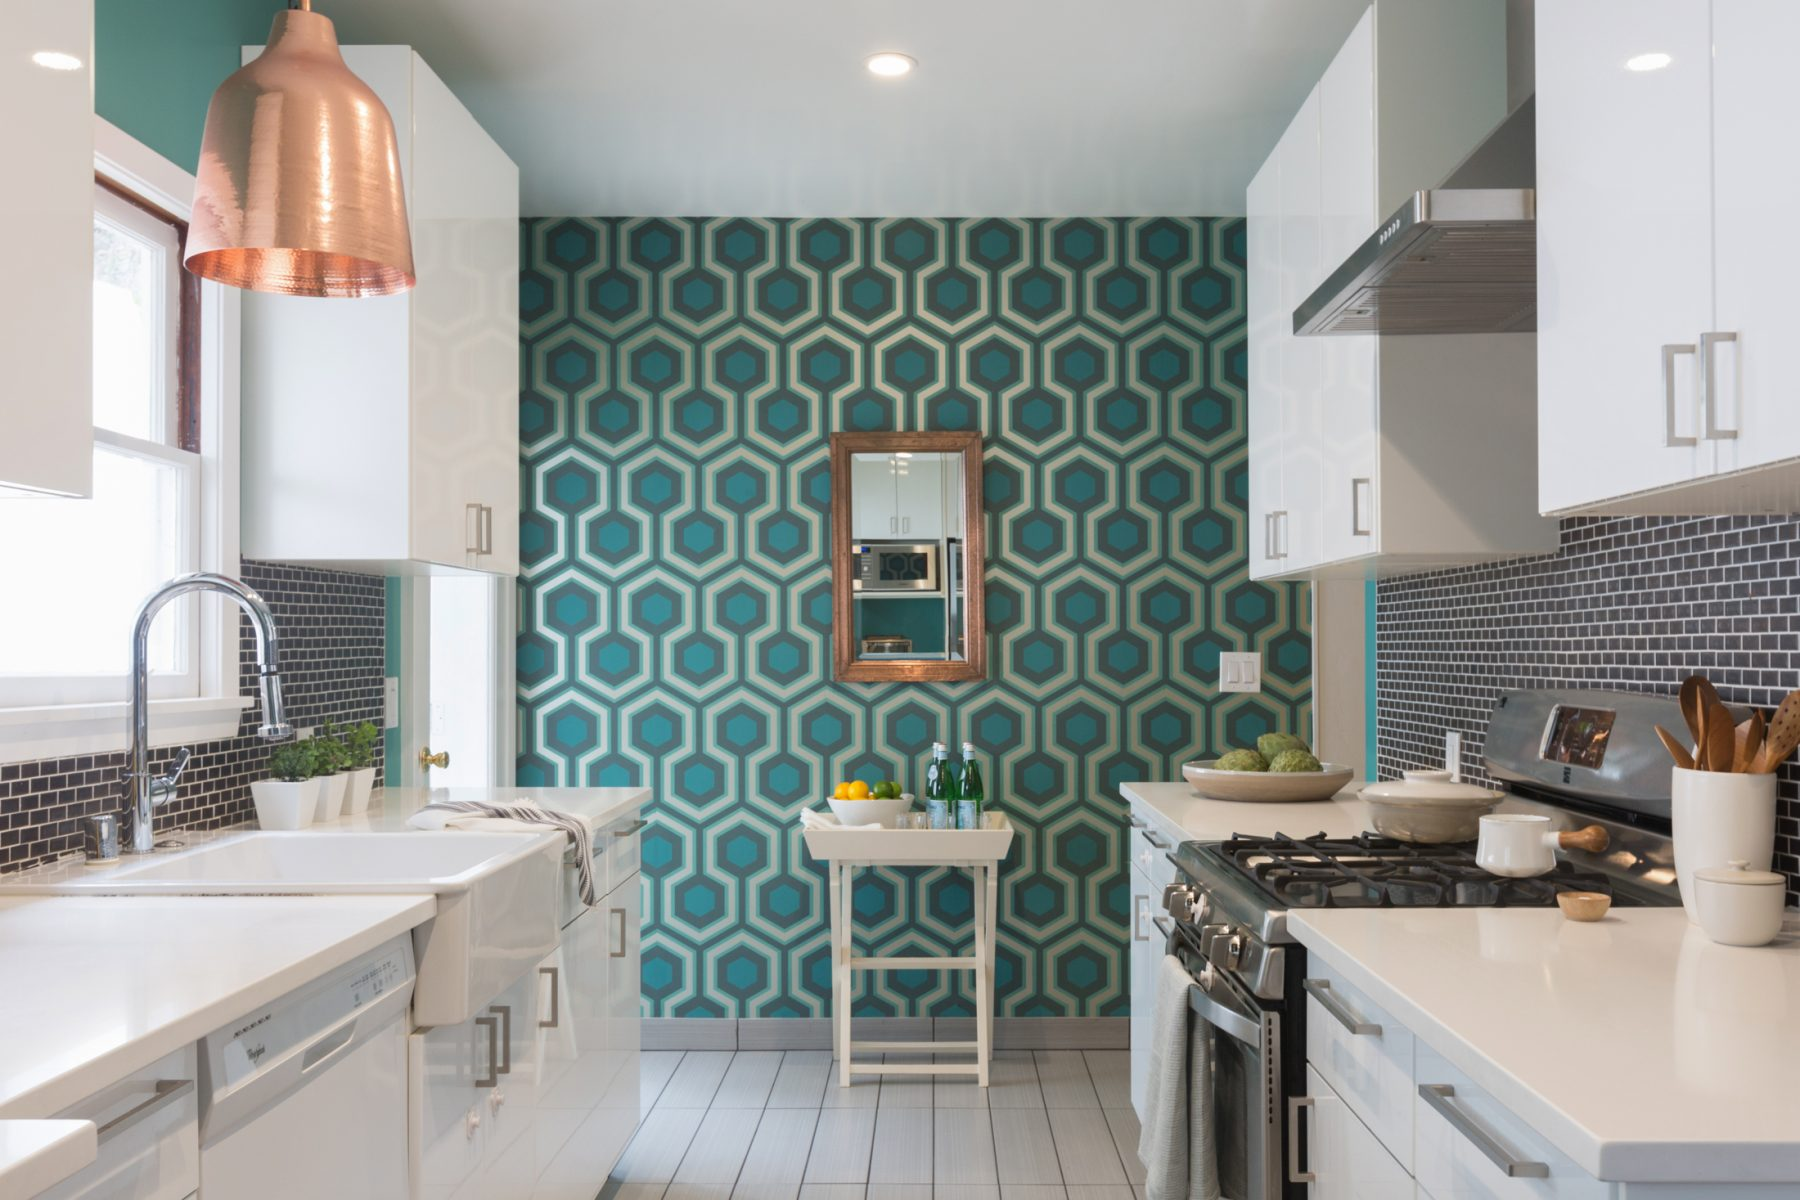 Teal wallpaper at the end of a kitchen.